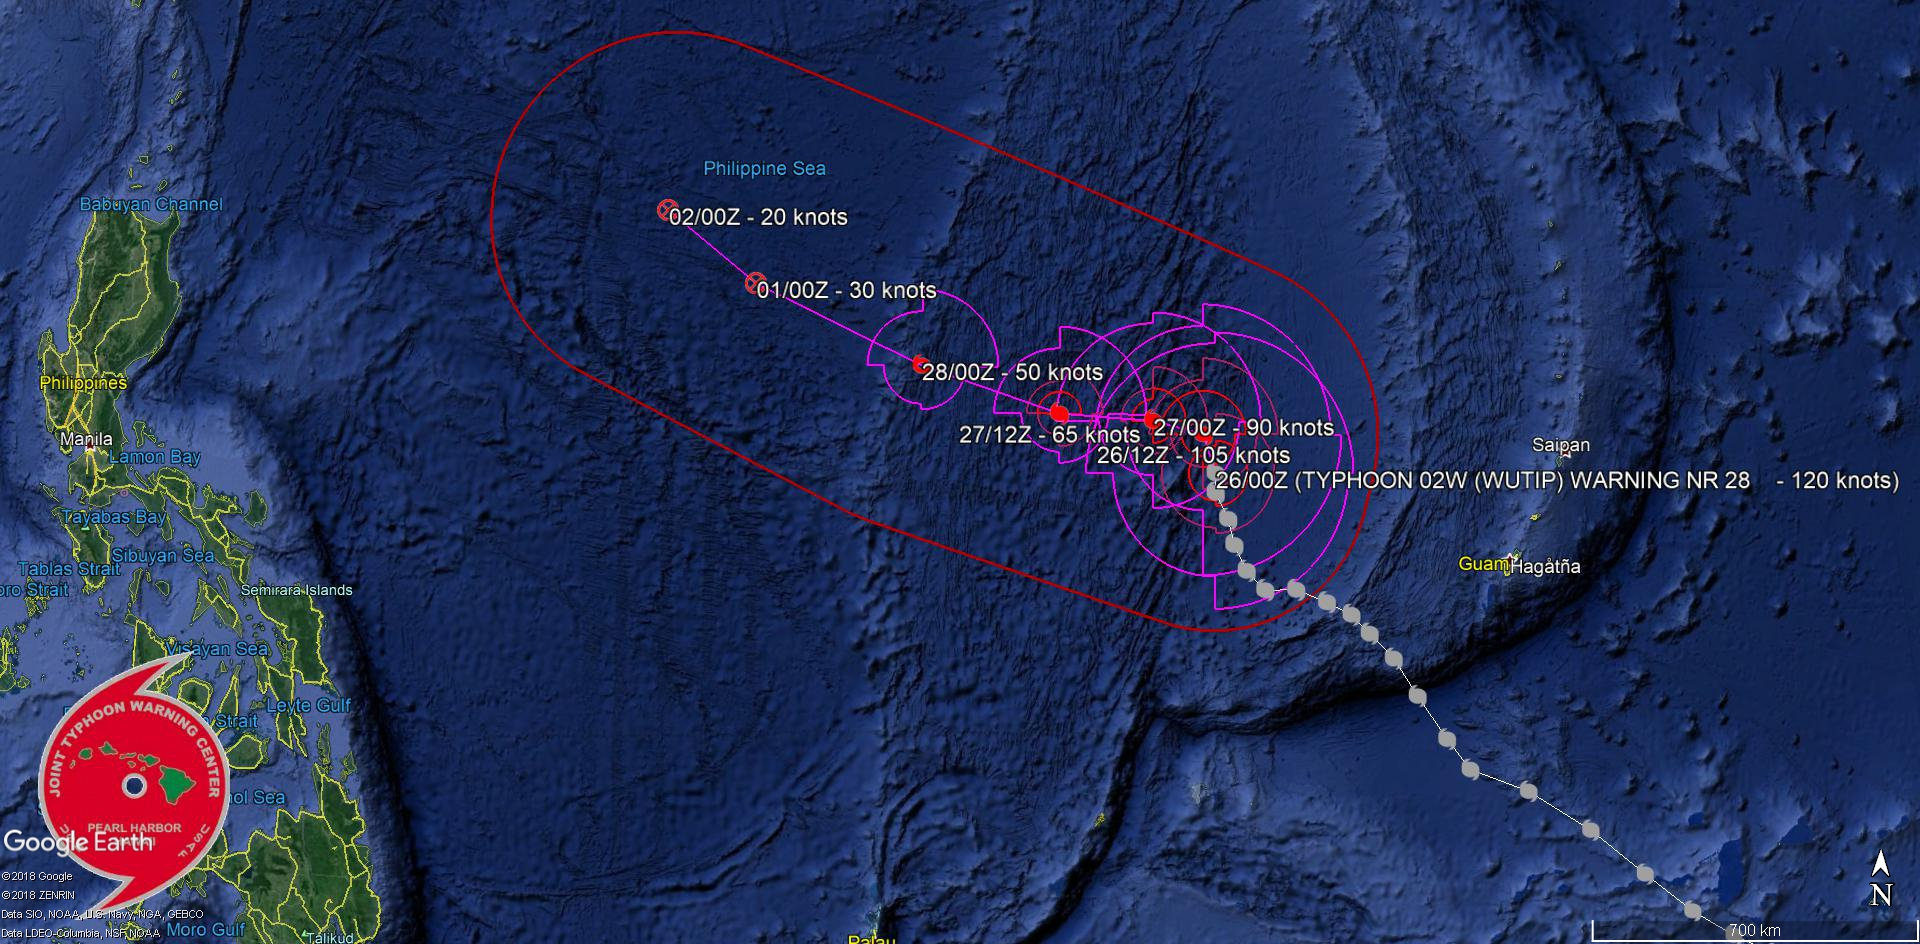 03UTC: Typhoon WUTIP(02W) ,Category 4 US, slow-moving and forecast to weaken rapidly after 24hours, no threat to land